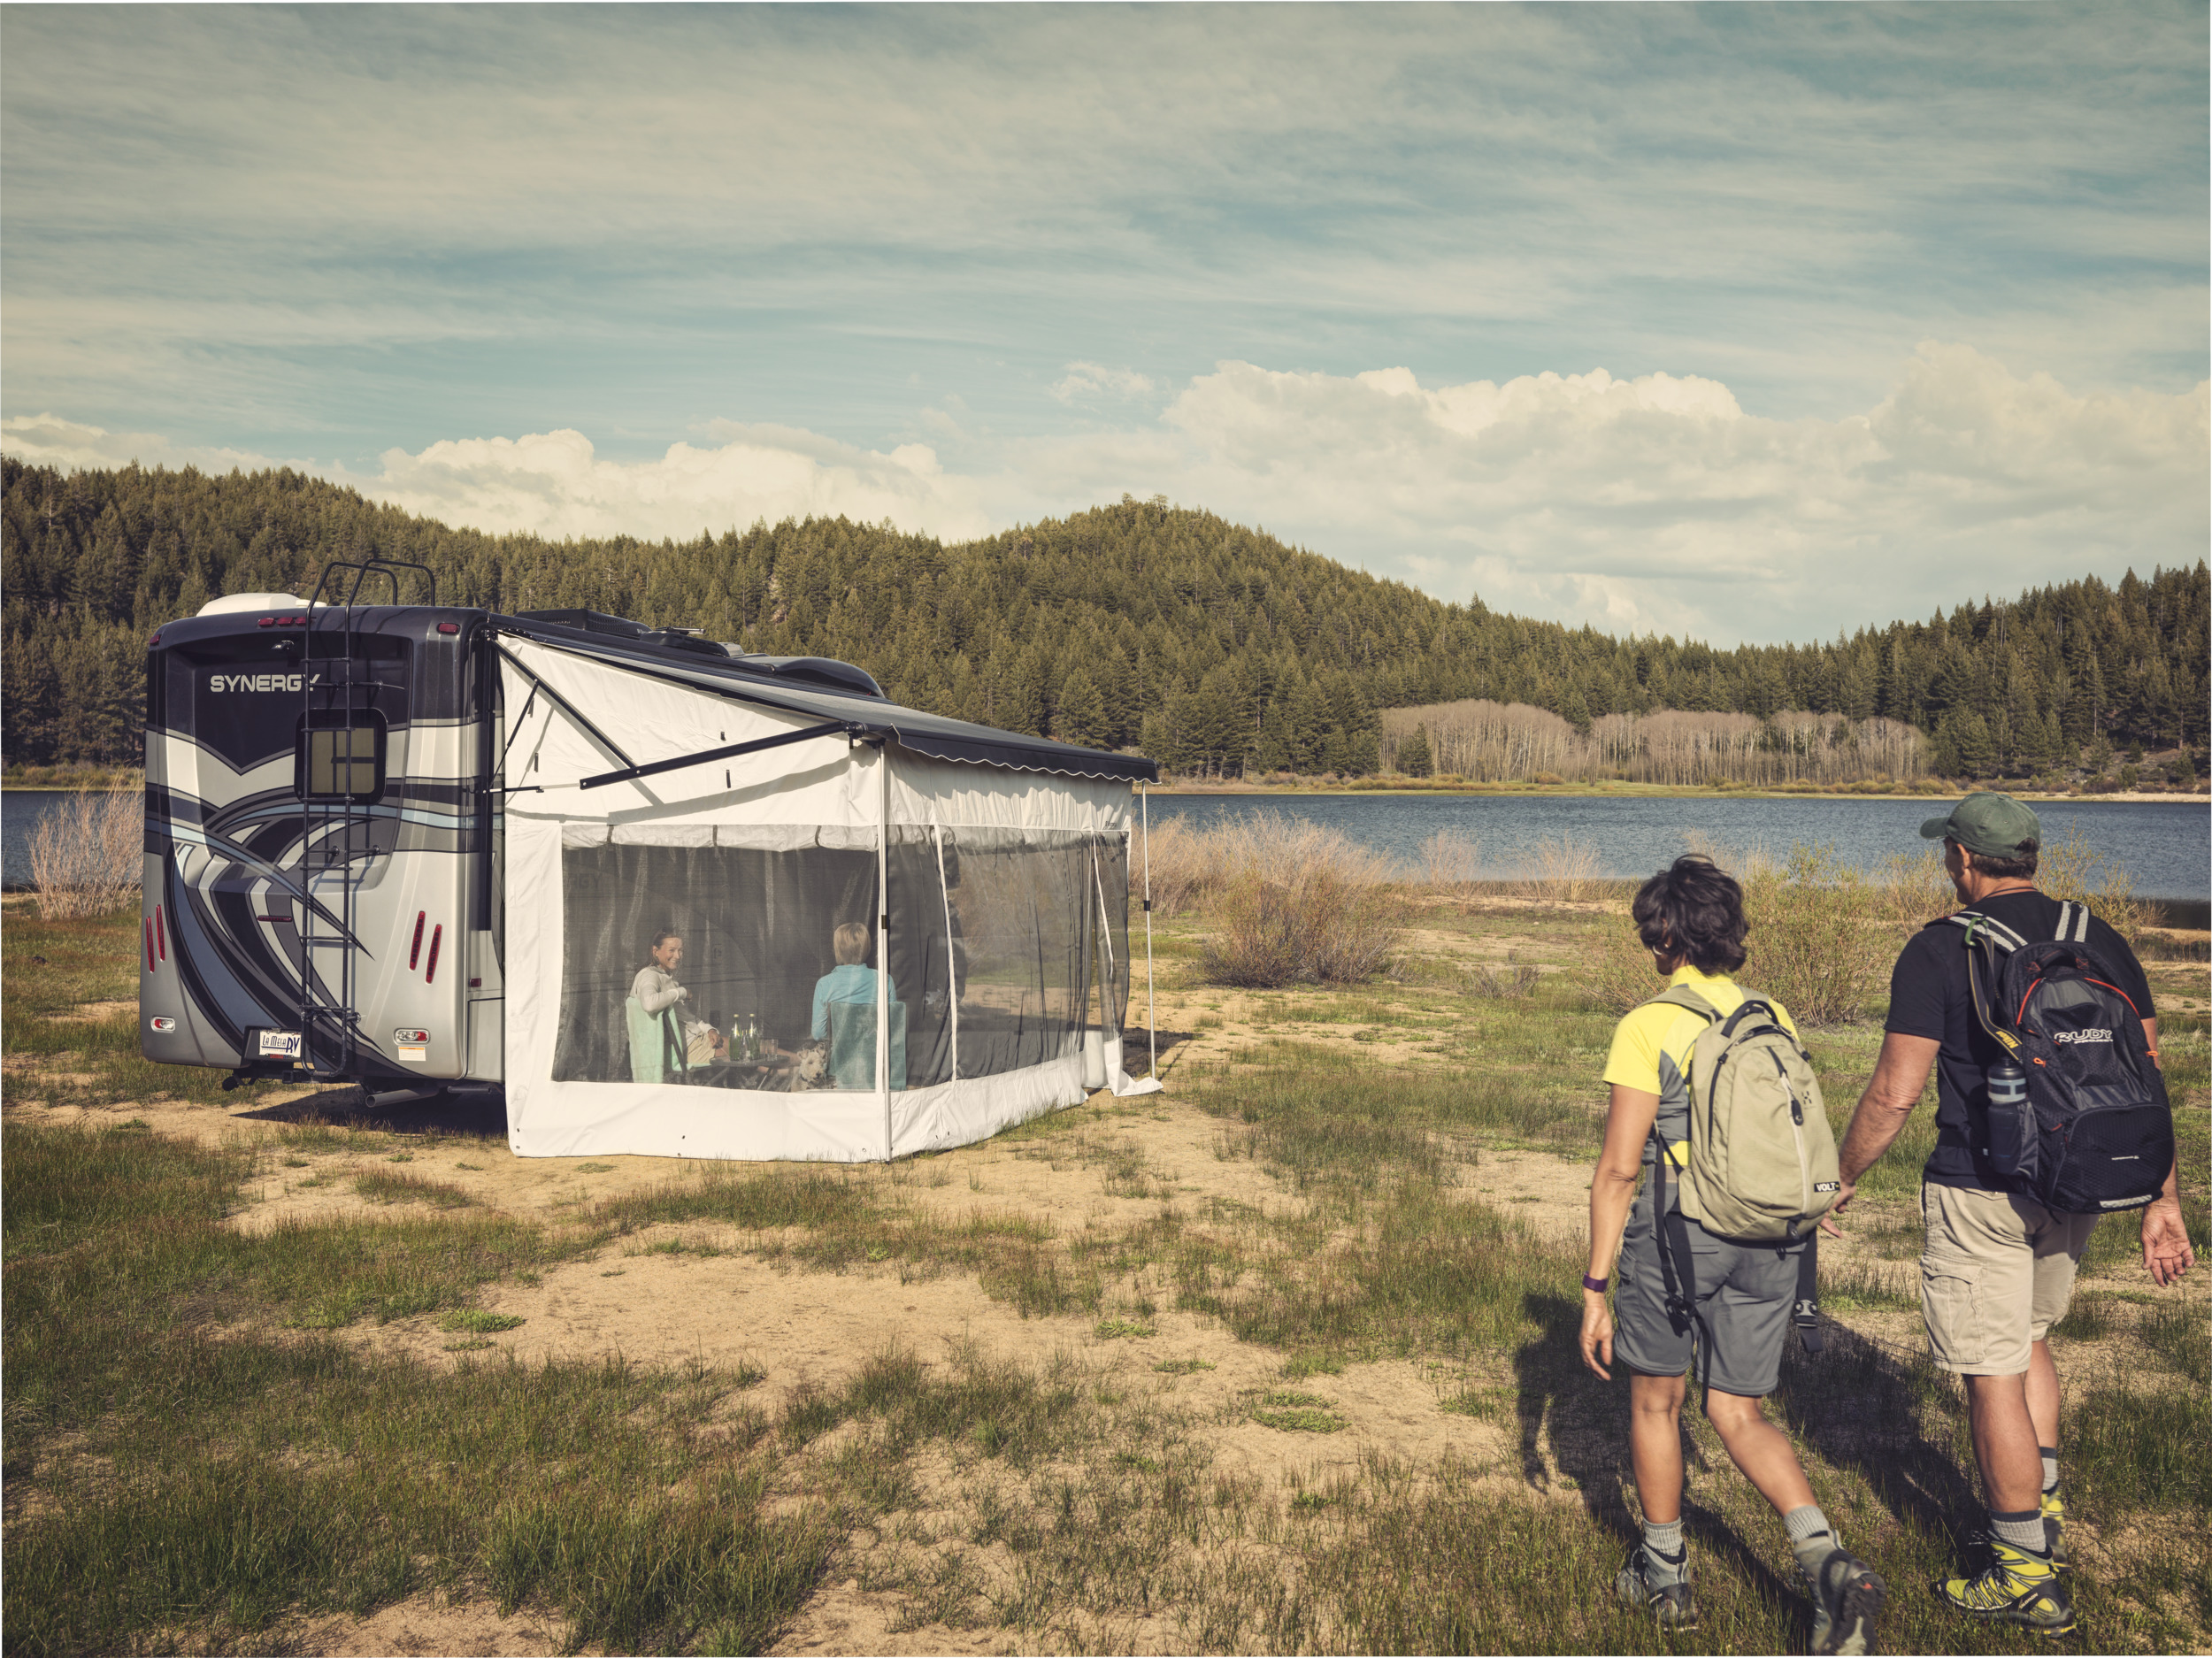 Dometic rv motorhome hiking awning tent, shelter, rv, motorhome, tent, awning, grass, lake, hike, rugsack, father, son, family, nature, picnic